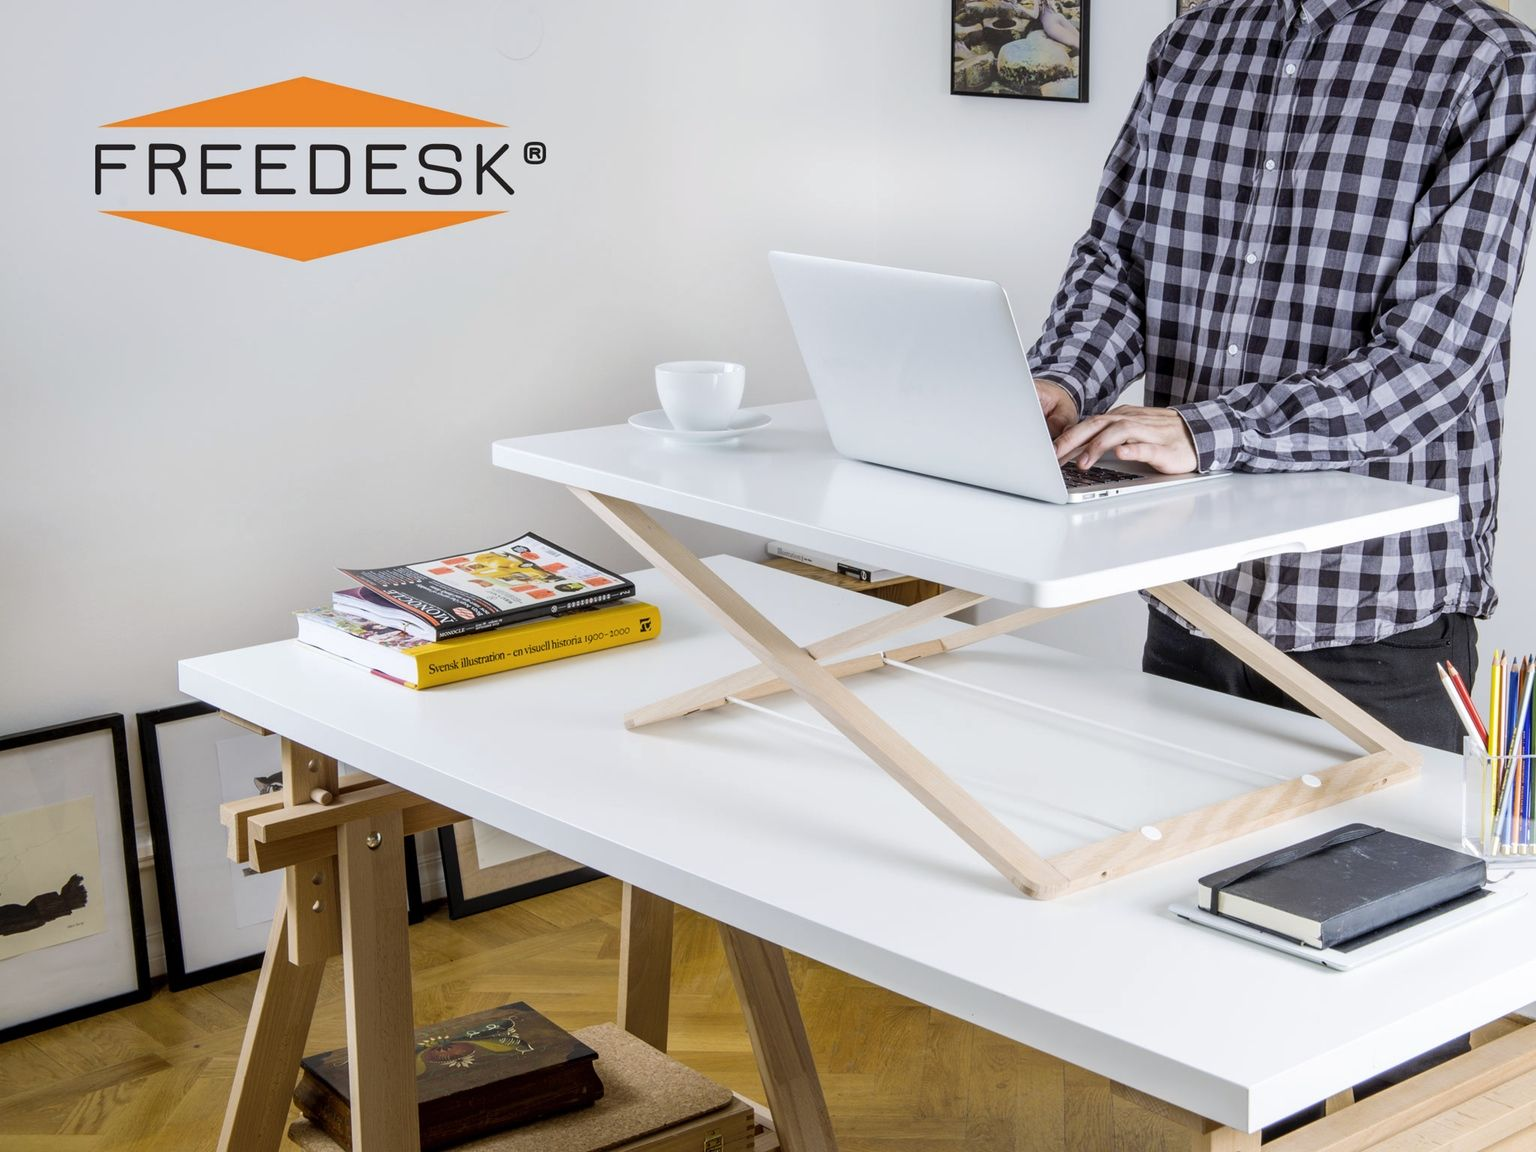 height raising up gray electric stand adjustable desk workstation standing